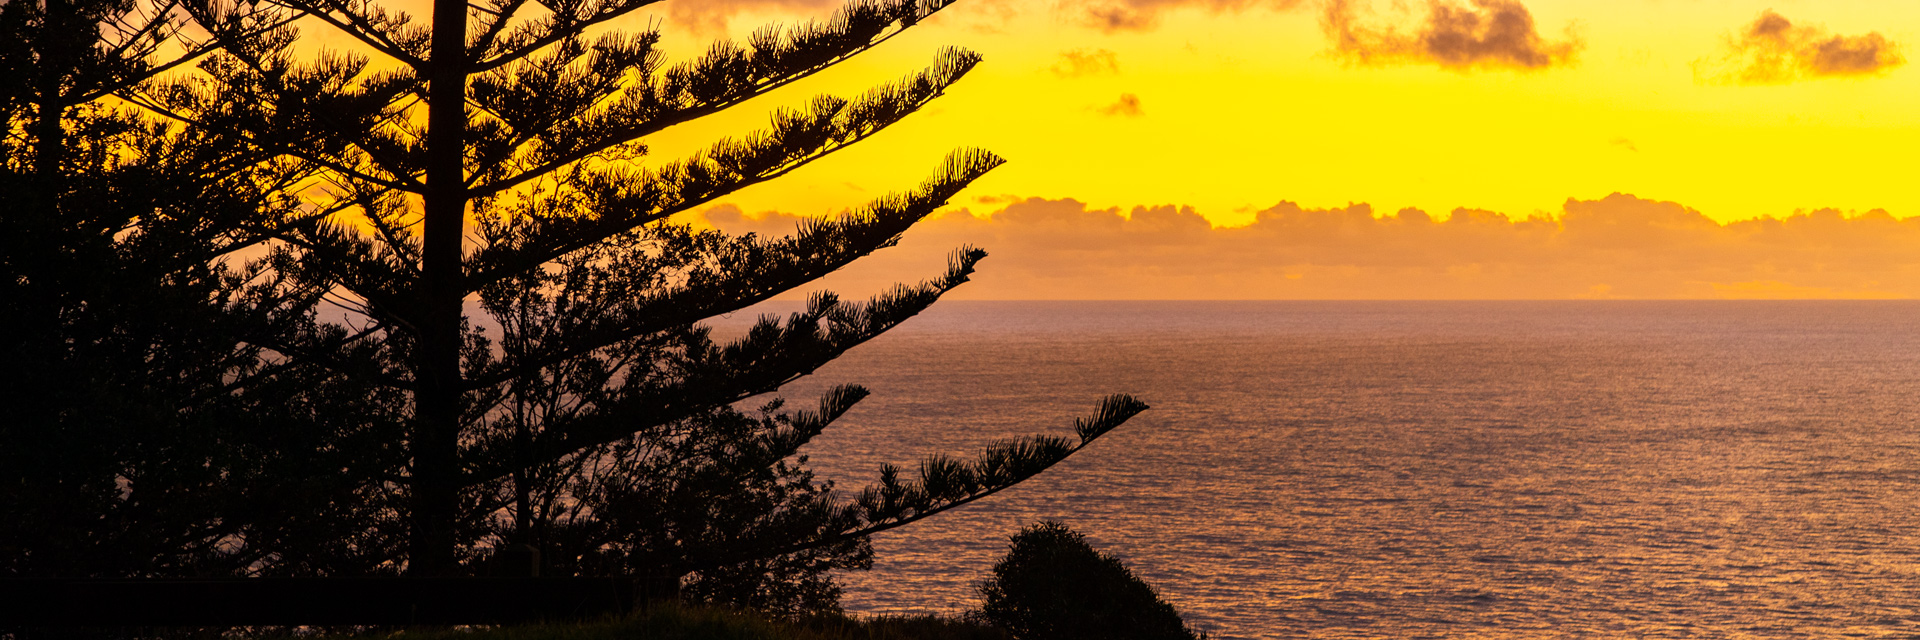 A view of the ocean's horizon at dusk. Behind the silhouette of a Norfolk pine tree, the golden sky illuminates the wate